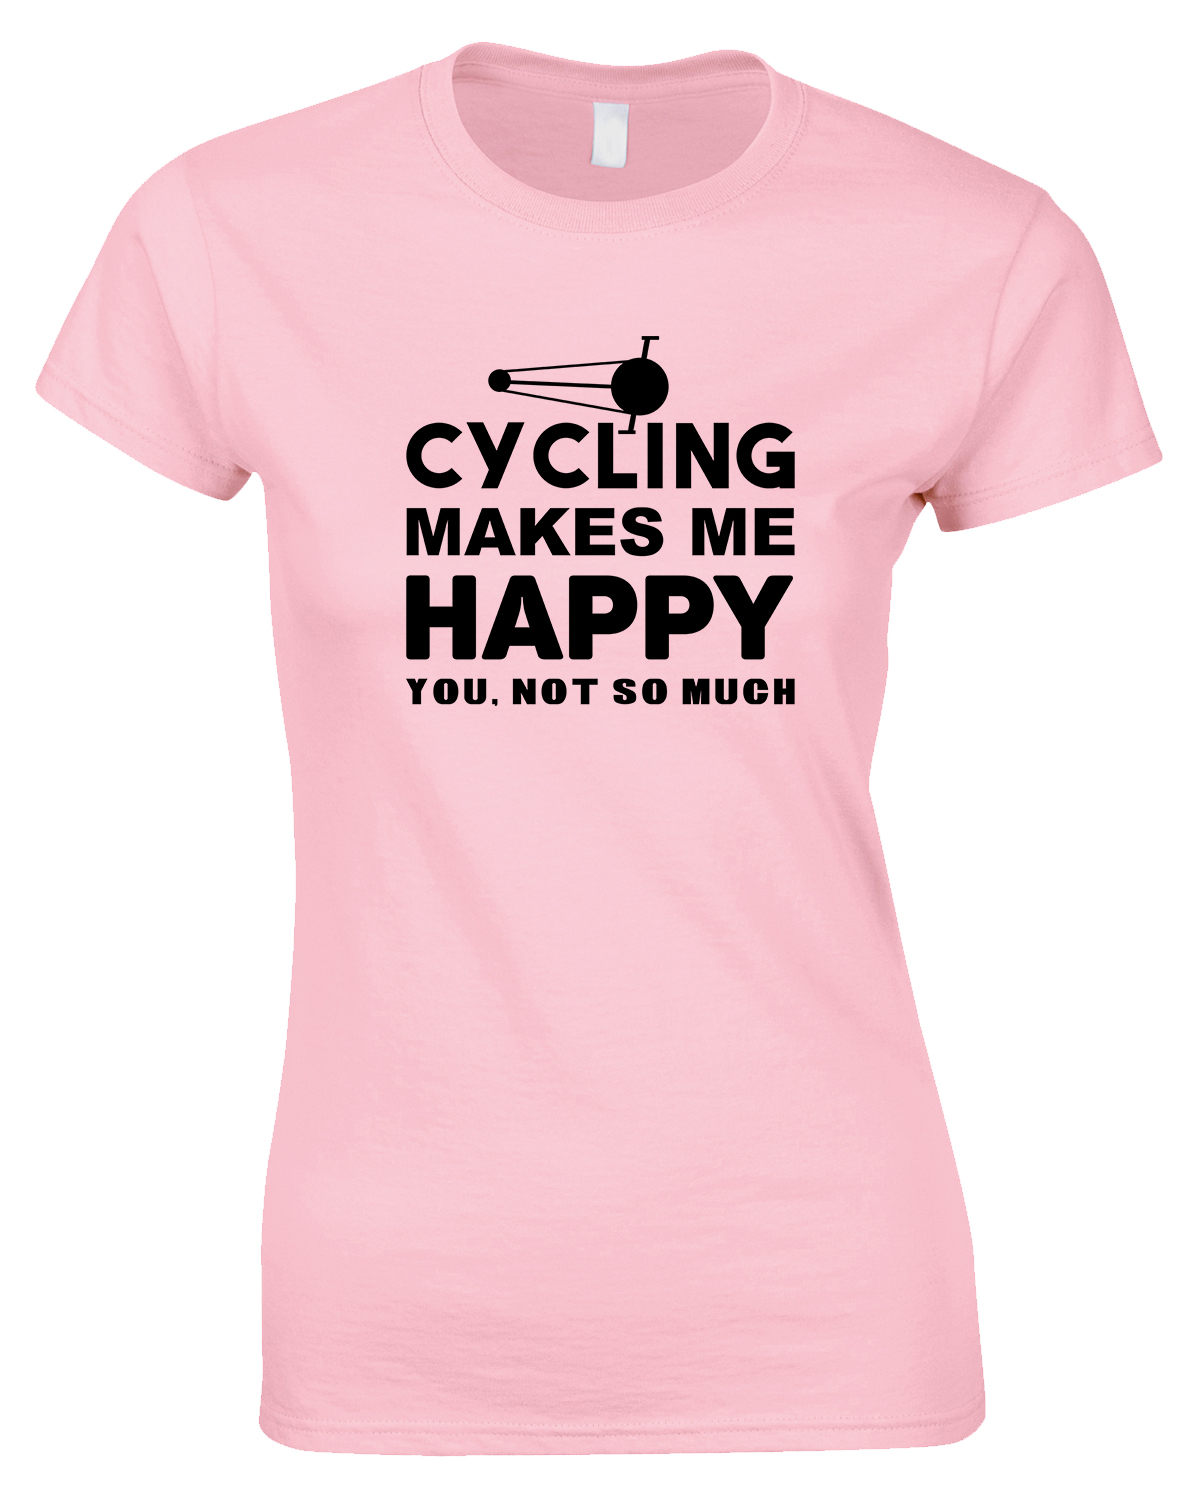 Cycling Makes Me Happy -You, Not So Much - Ladies Style T Shirt